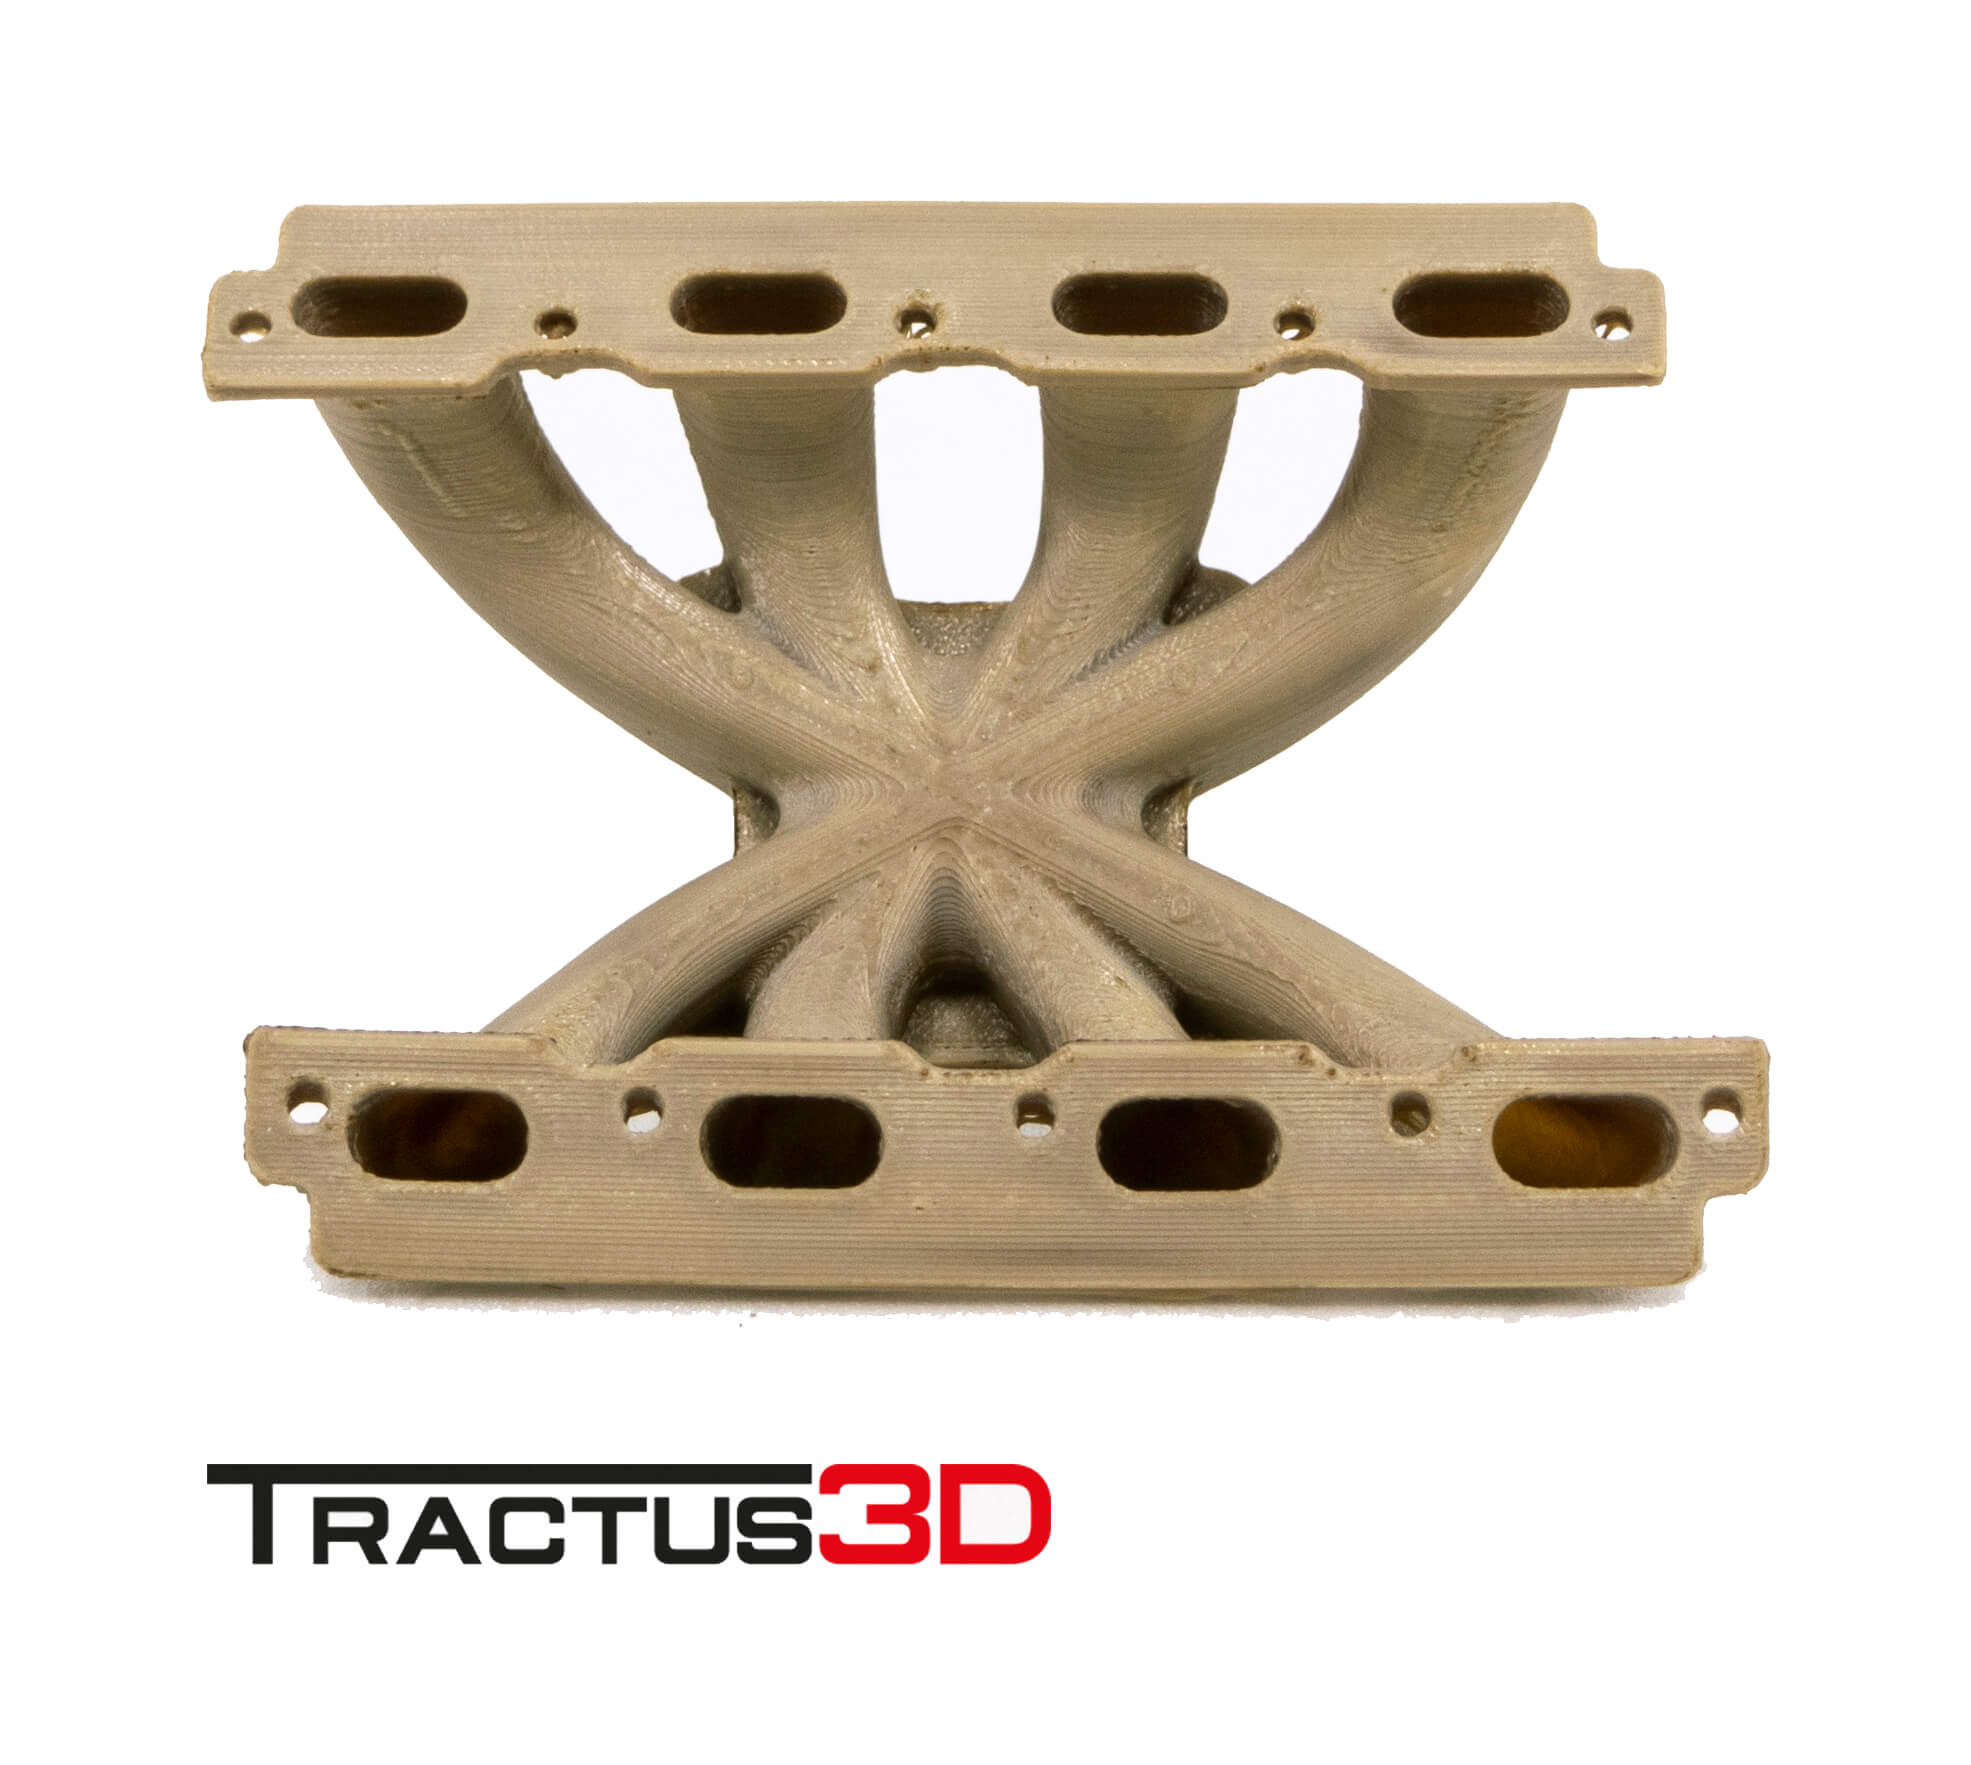 Tractus3D : Impression 3D PEEK de pointe